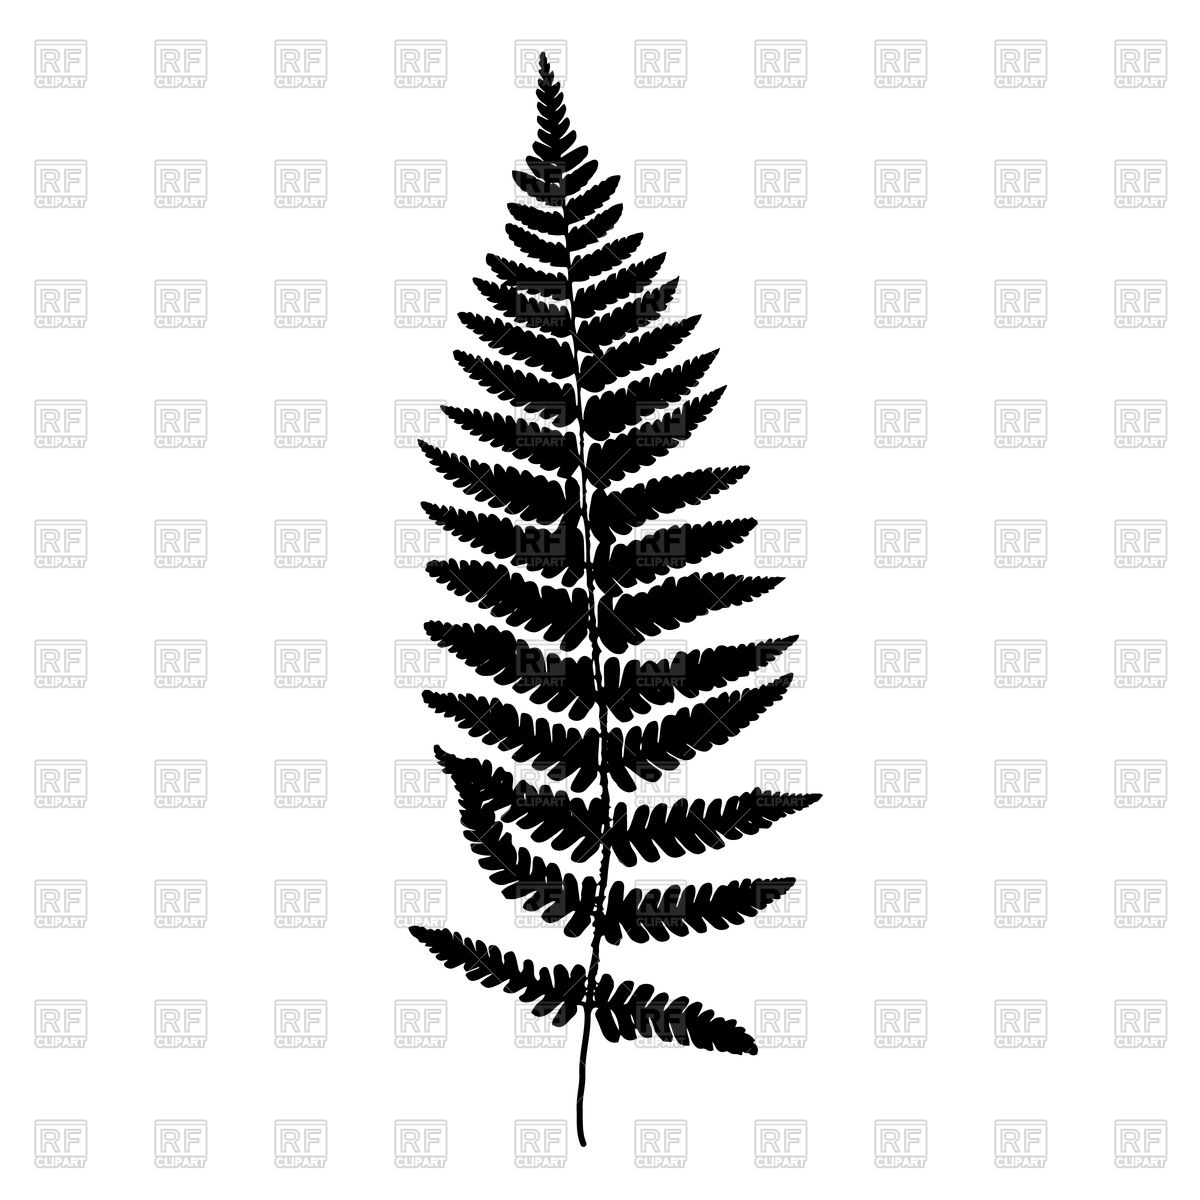 1200x1200 Fern Leaf Royalty Free Vector Clip Art Image